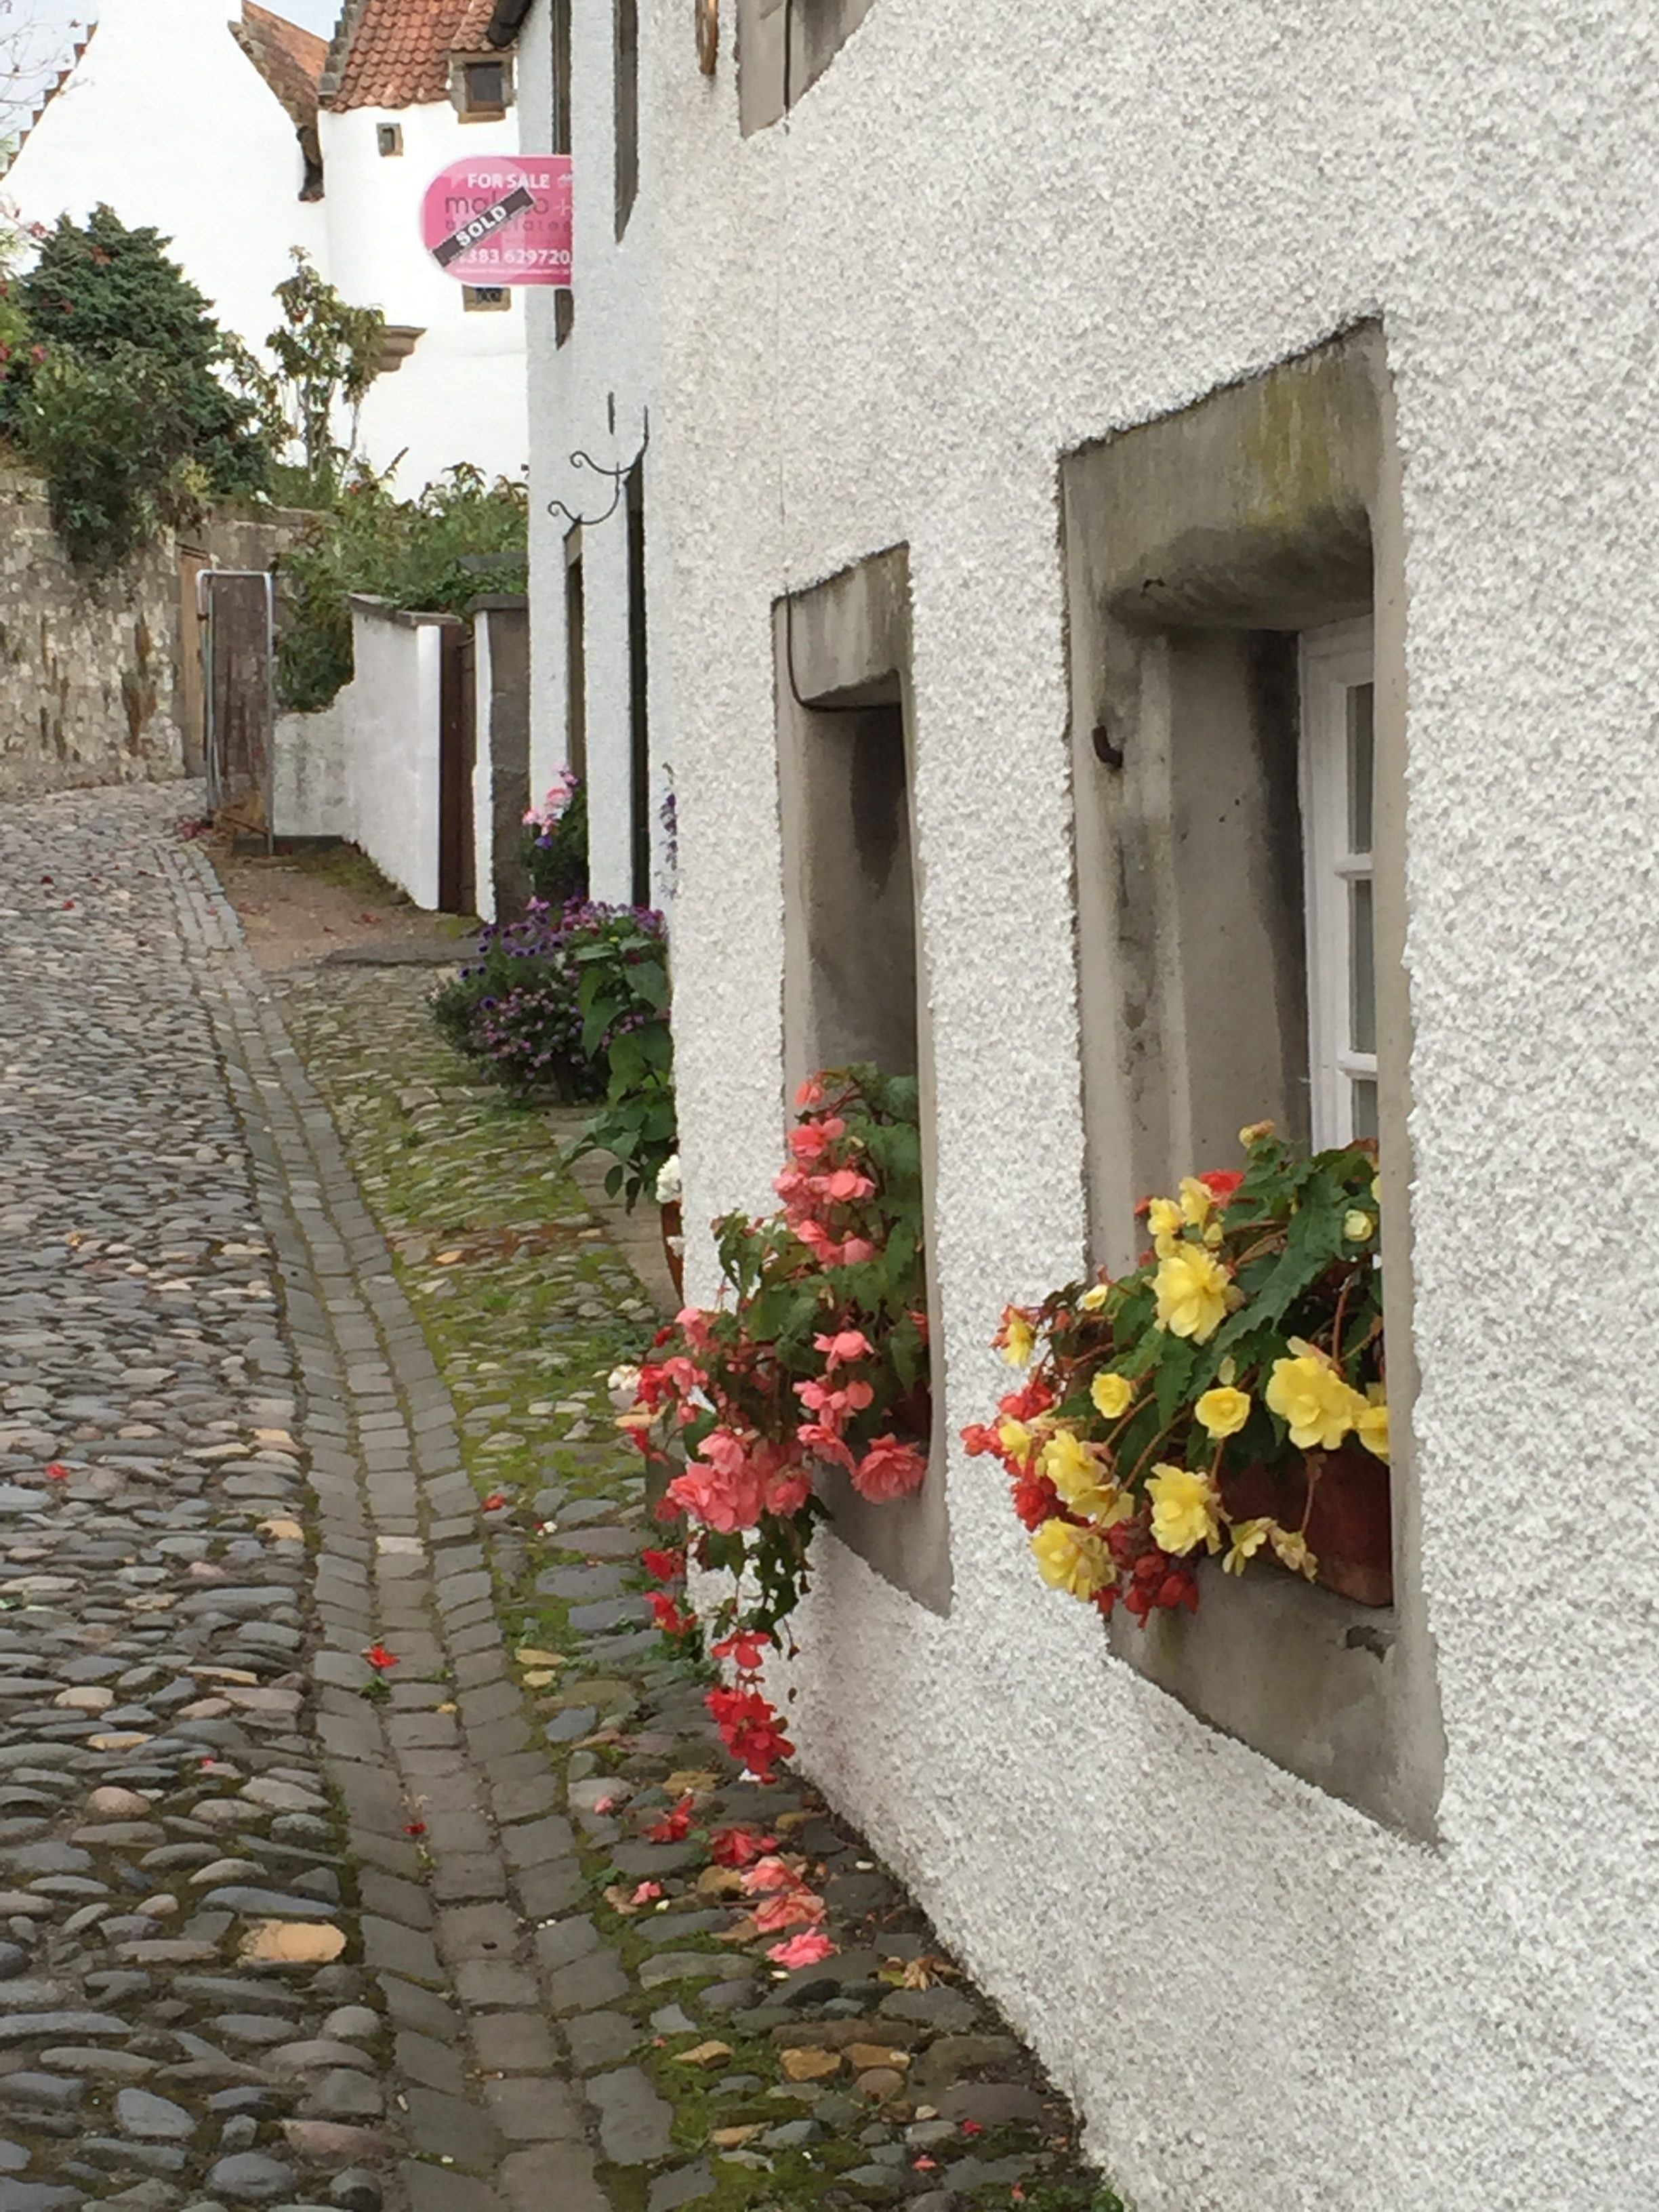 Village street with cobblestones, houses, and flowers in windowboxes.